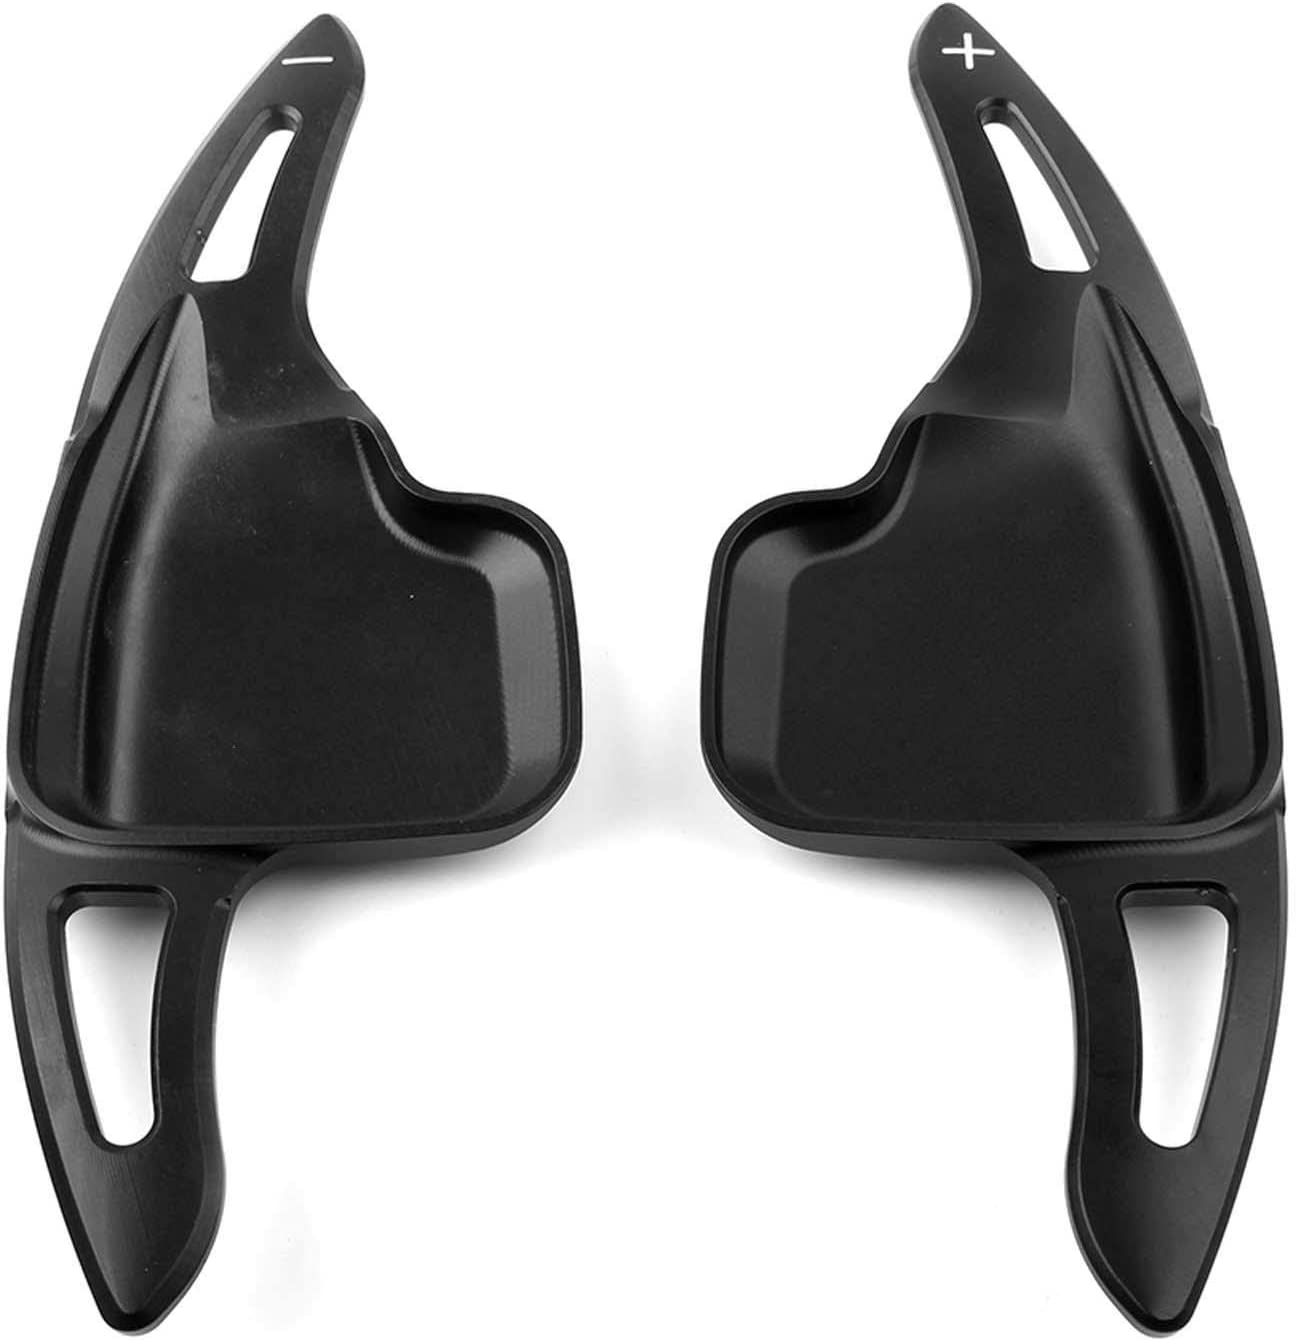 Some reservation NIUASH Gear Shift Paddles Aluminum Alloy Low price Steering of 1 Pair car